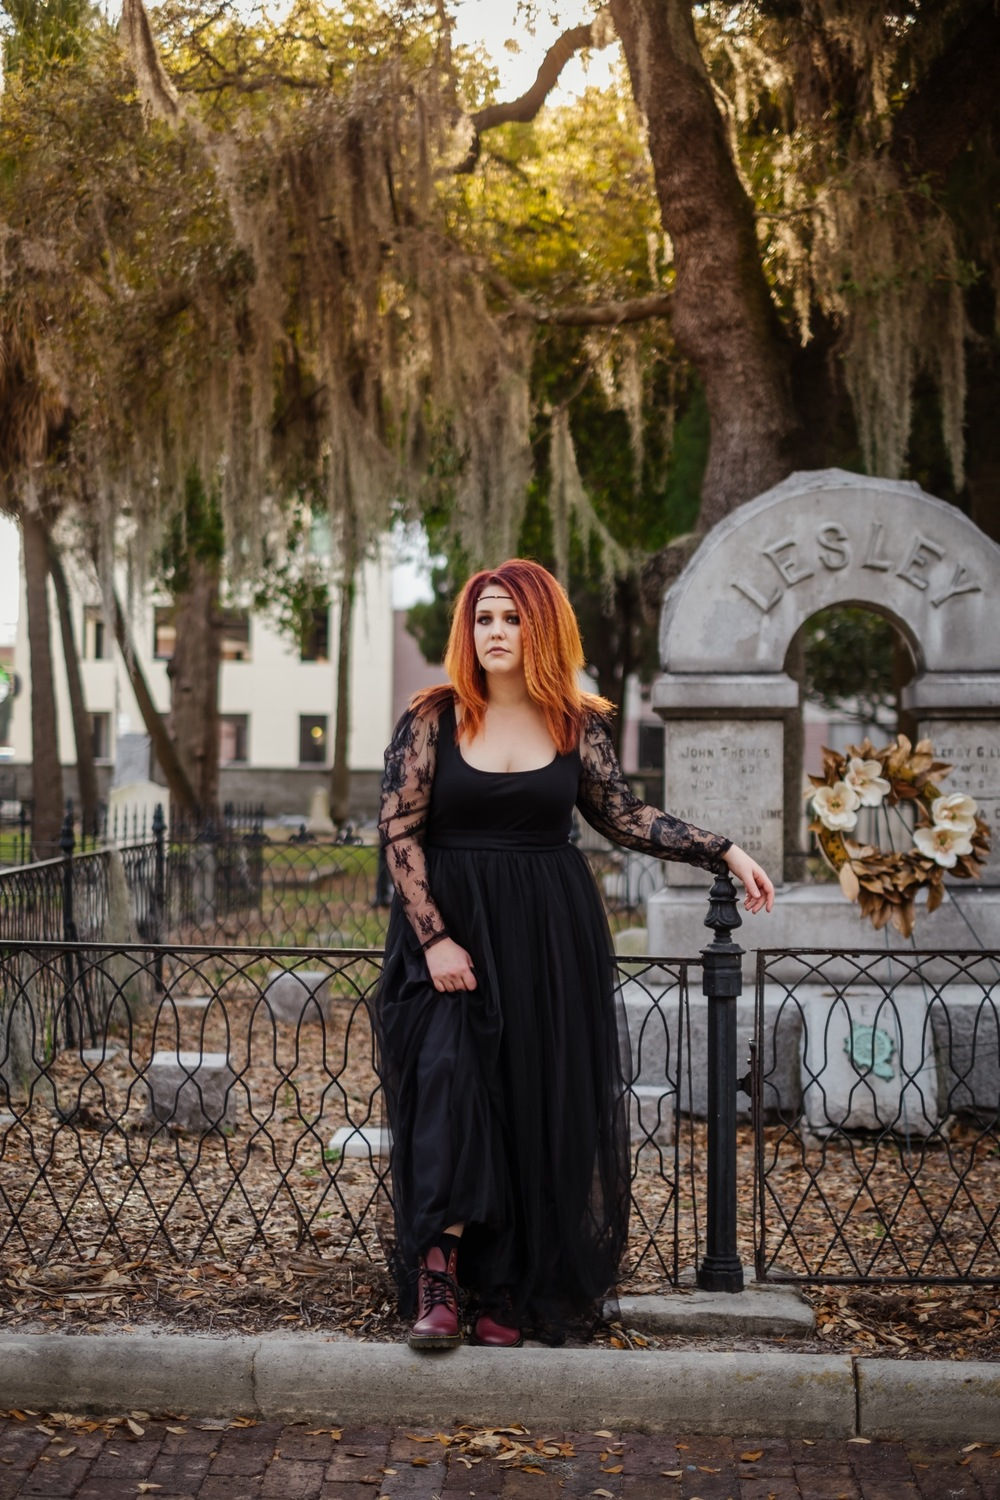 Goth Cemetery Shoot For 30th Birthday Tampa Wedding Photography Sophisticated Fun Vibrant 30th birthday smash cake and booze photo shoot. goth cemetery shoot for 30th birthday